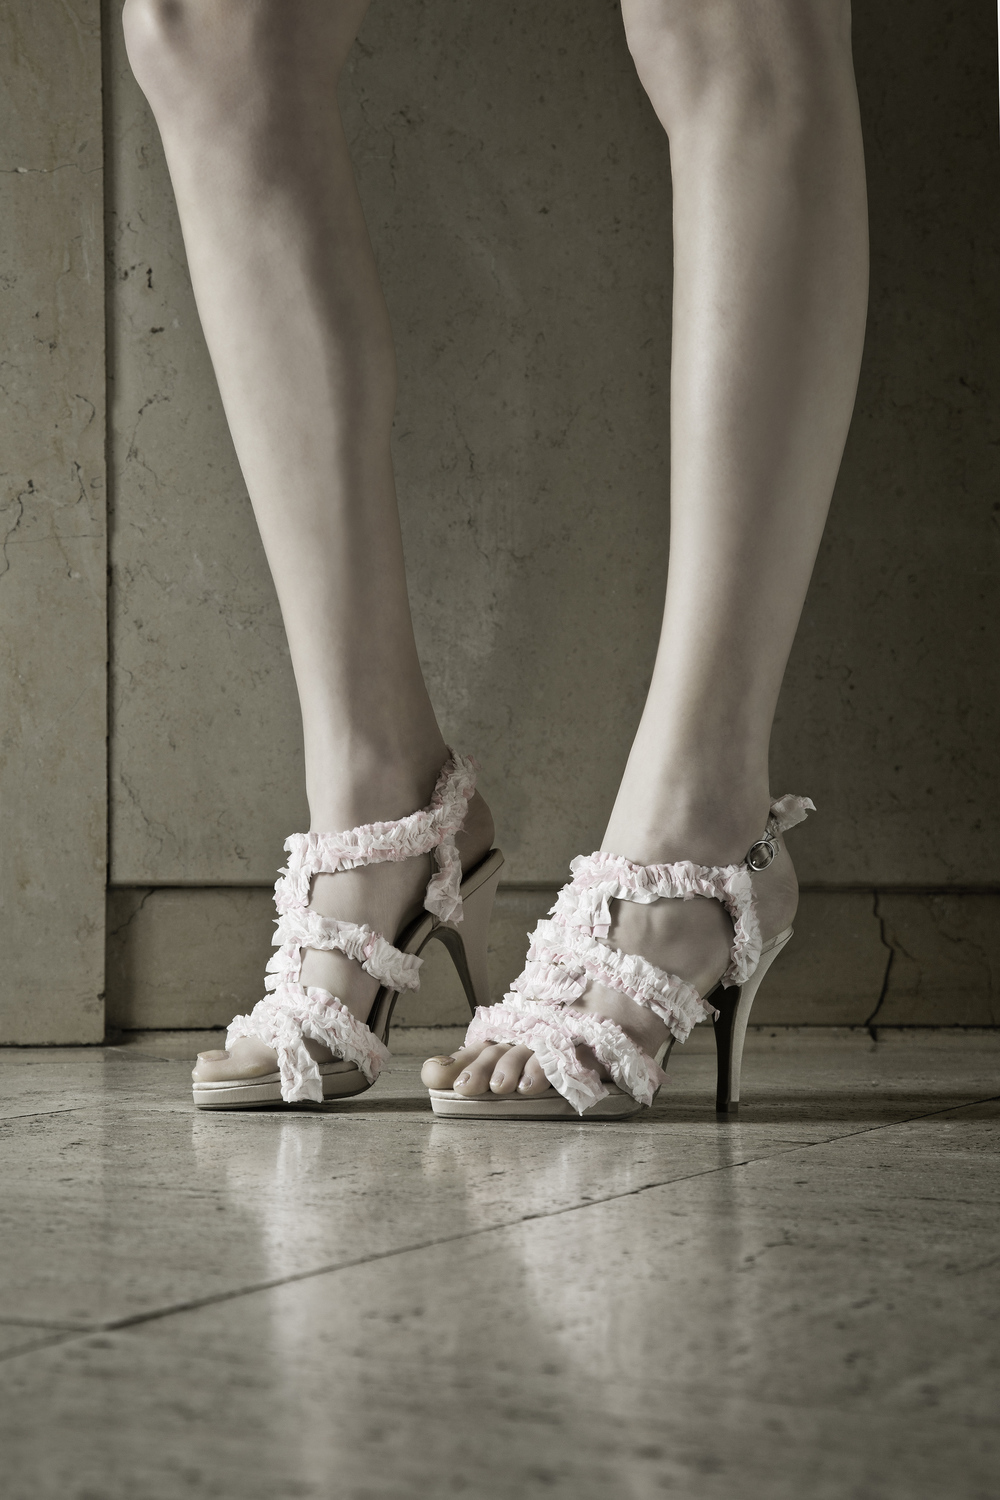 White-Cashmere-Collection-2012-Yvonne-Lin-for-Town-Shoes-Photographer-Angus-Rowe-MacPherson.jpg